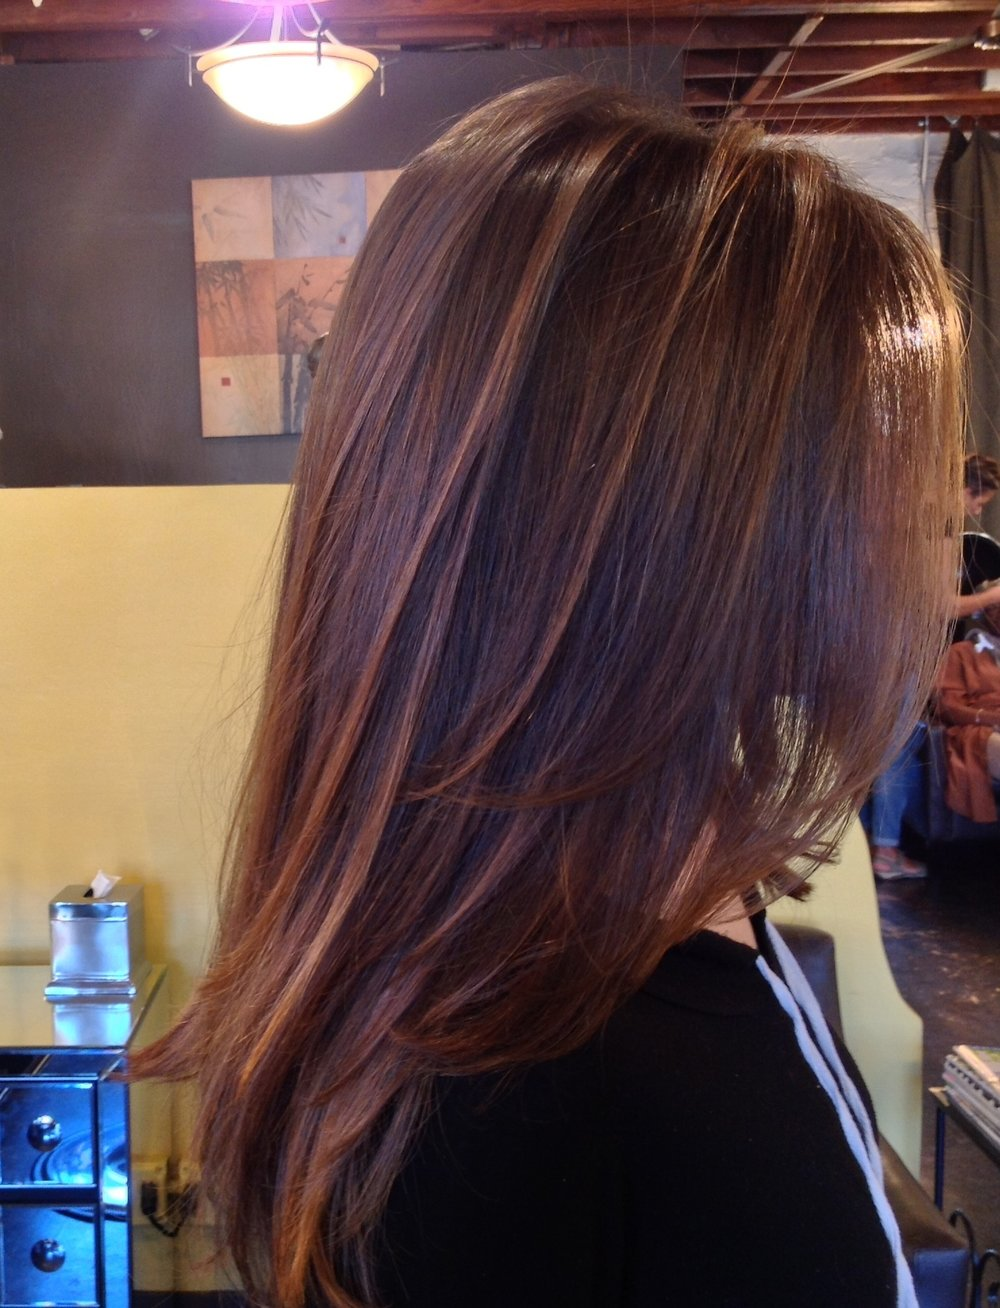 Awilda-Salon-highlights.JPG